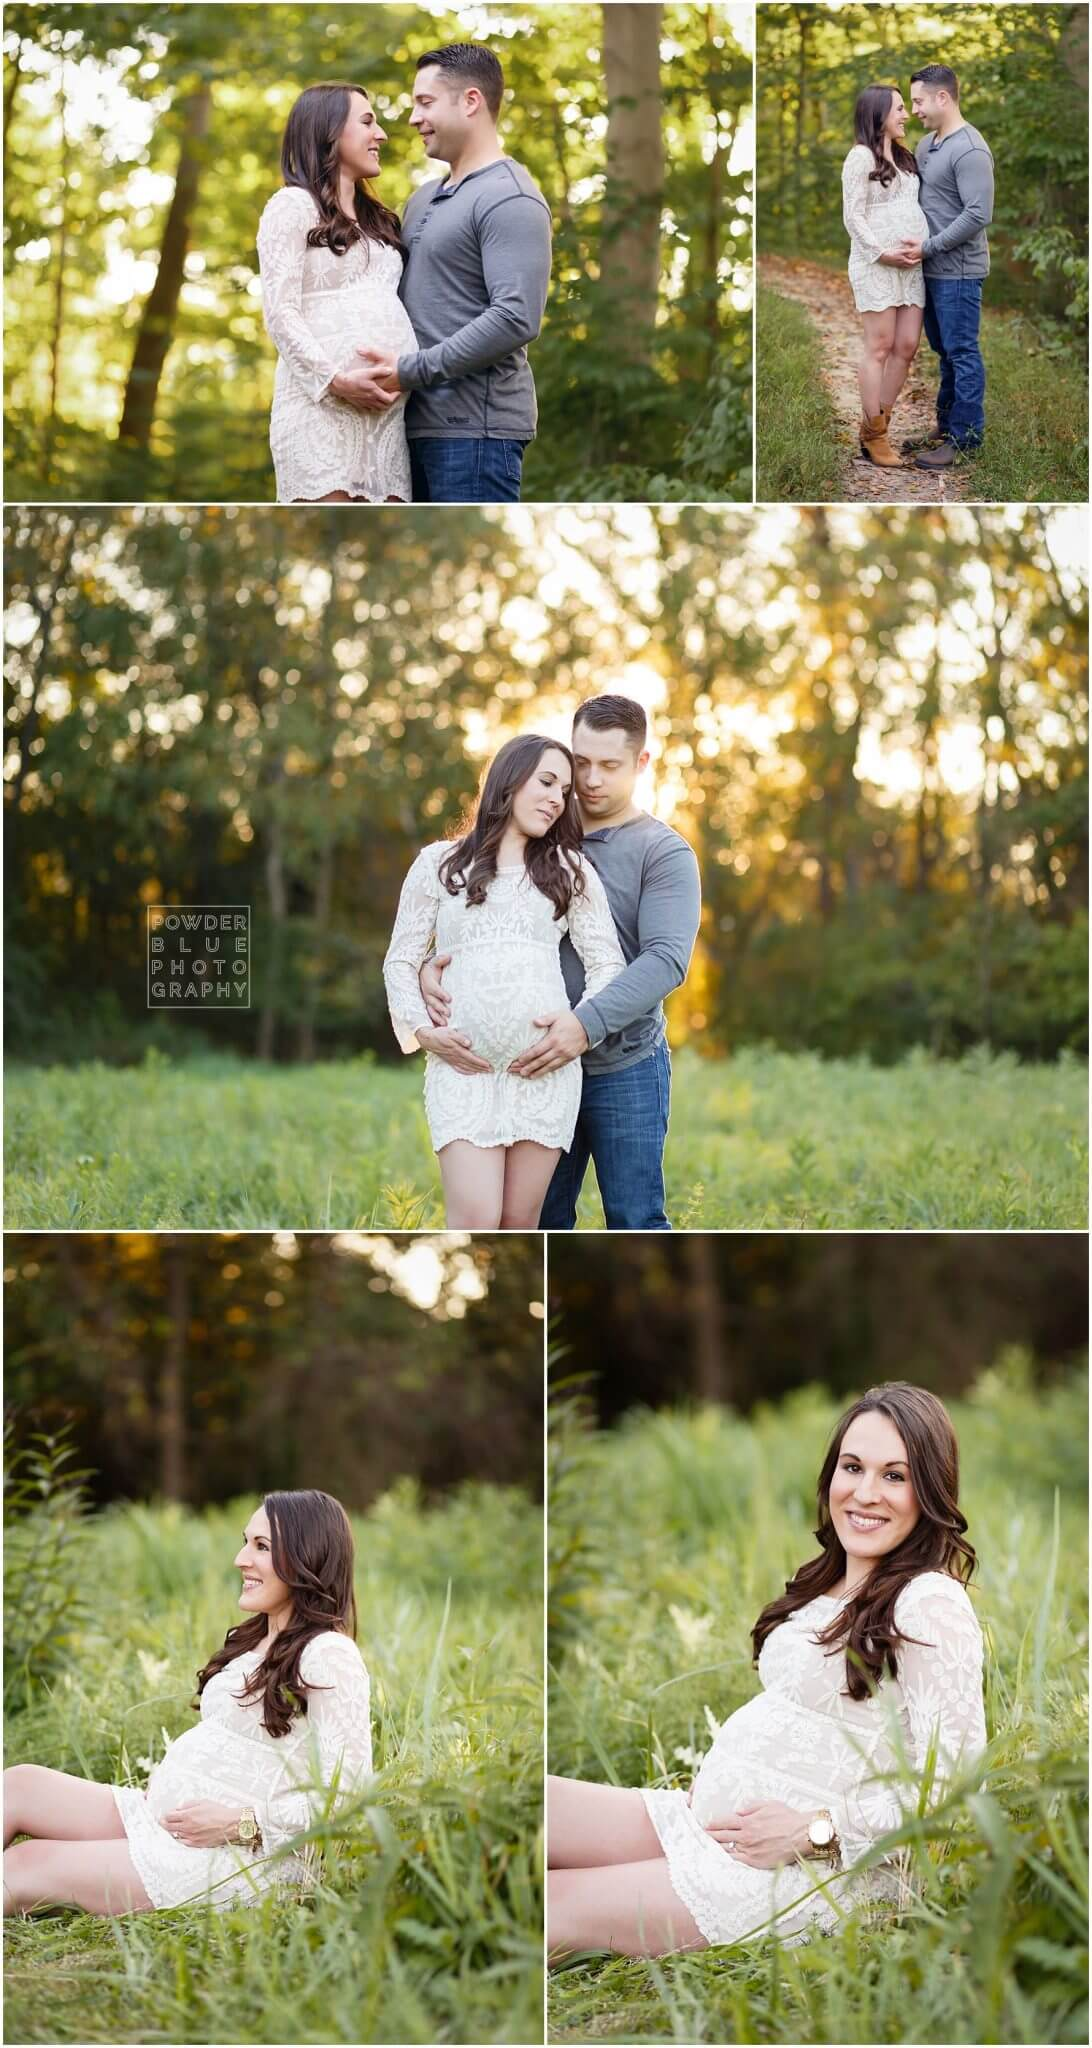 pittsburgh on location maternity session with woman in white lace dress at 33 weeks pregnant. South Hills Pittsburgh Maternity Photographer Missy Timko at Powder Blue Photography.